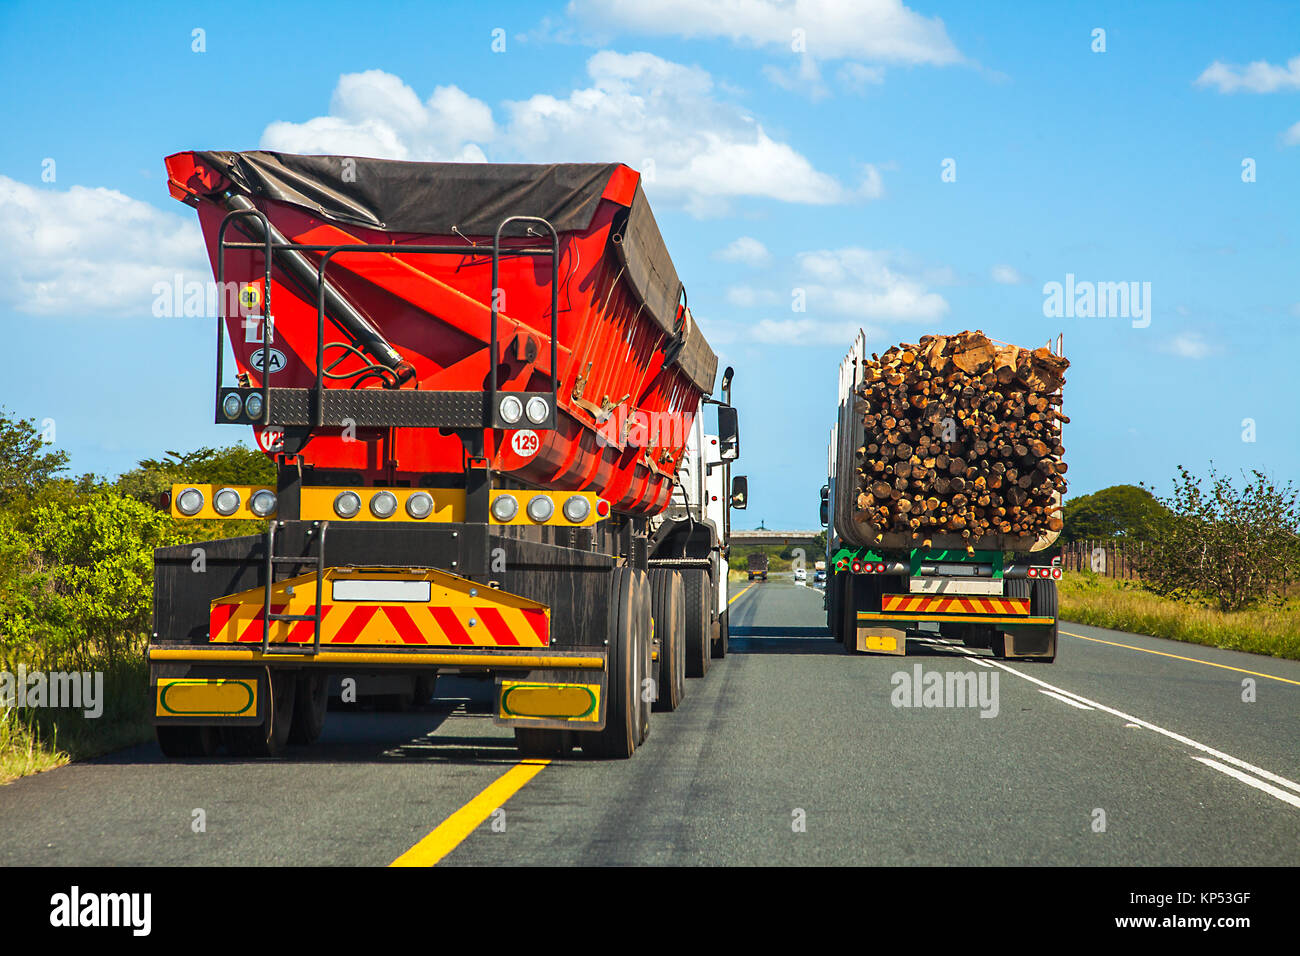 Dangerous overtaking maneuver in South Africa - Stock Image